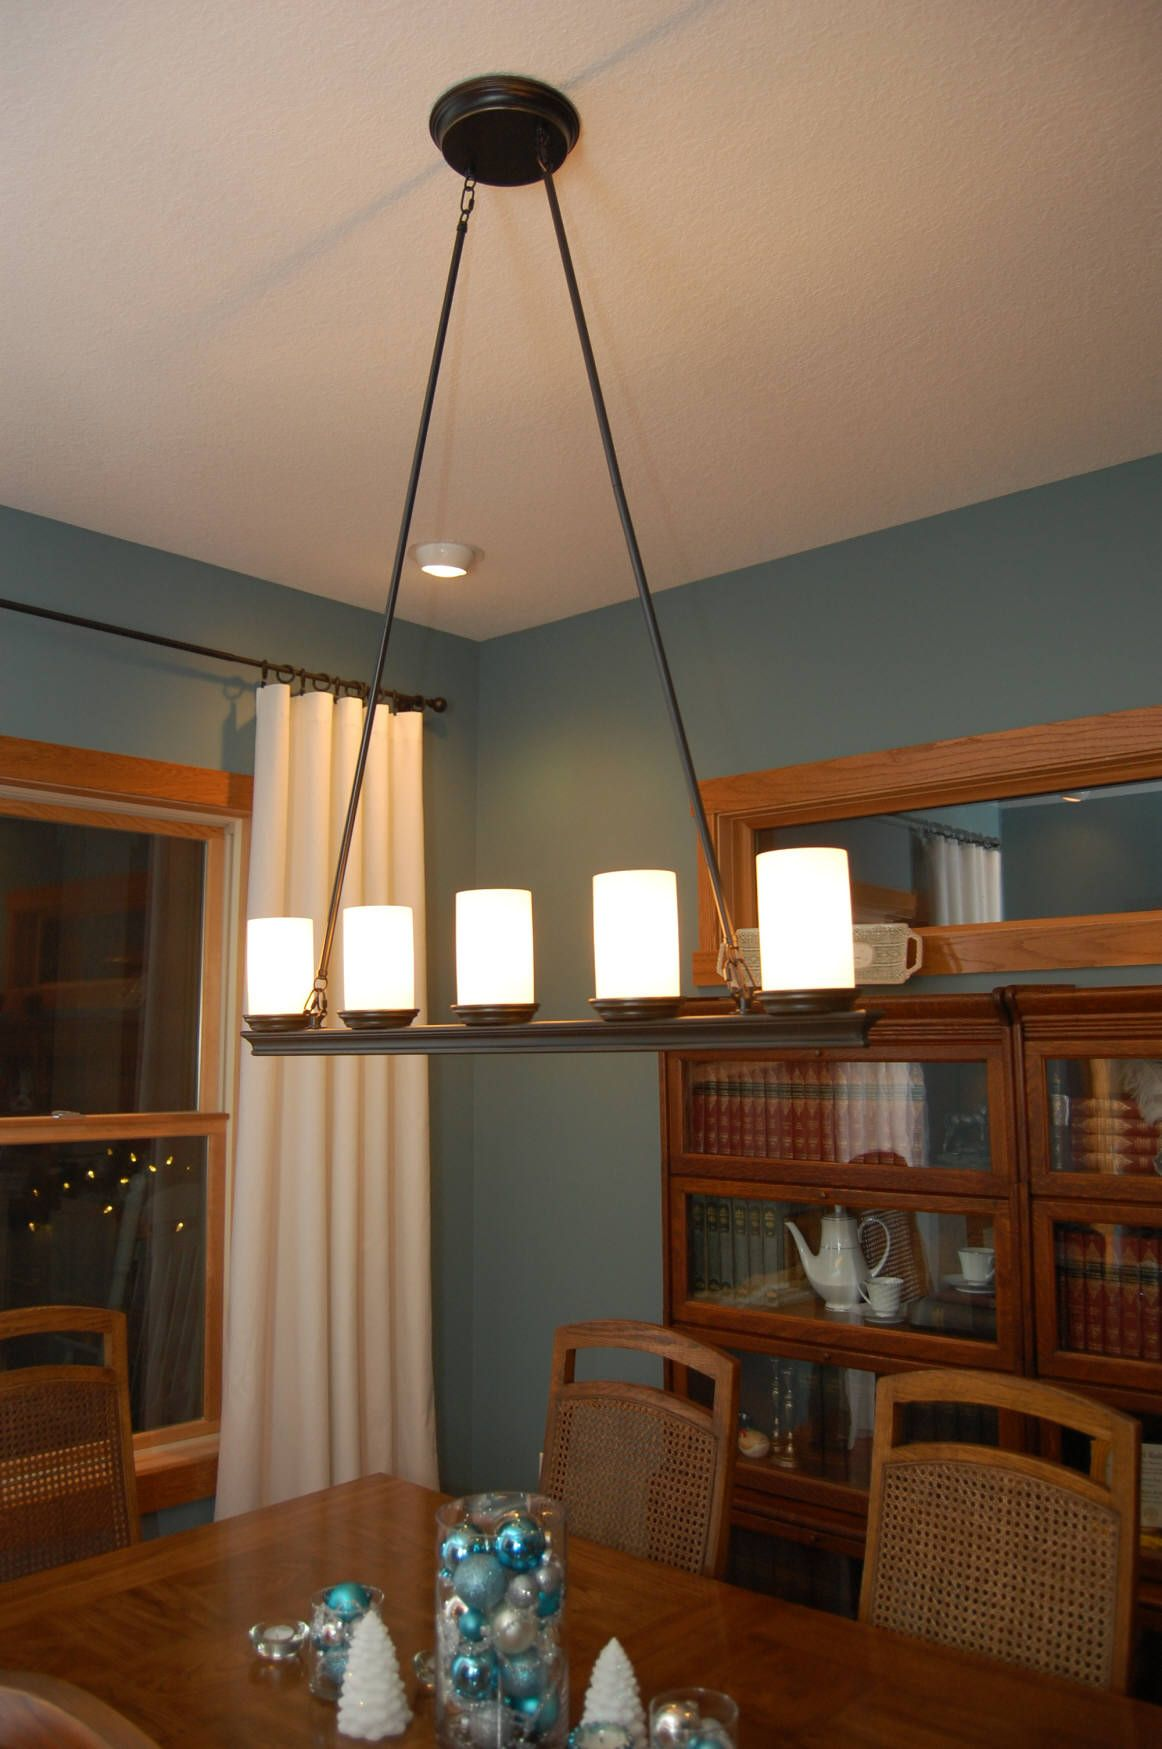 22 Best Ideas Of Pendant Lighting For Kitchen Dining Room And Bedroom Home Gardens